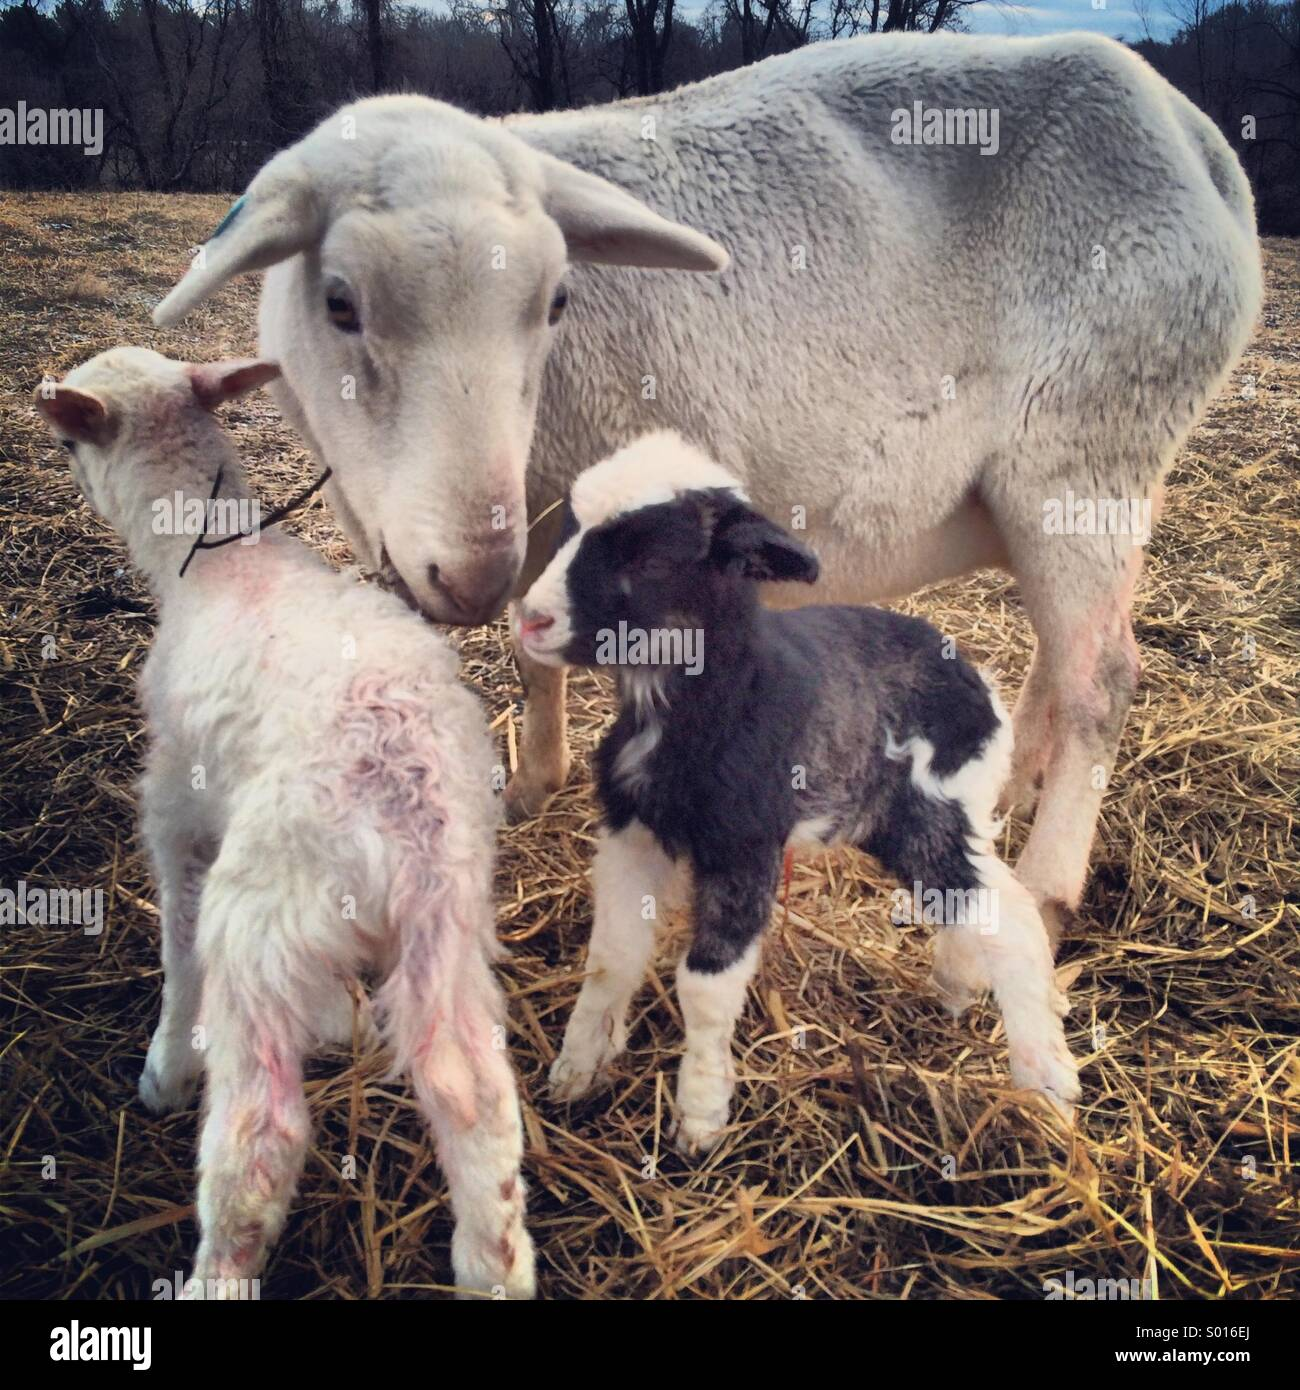 Mother sheep with babies - Stock Image